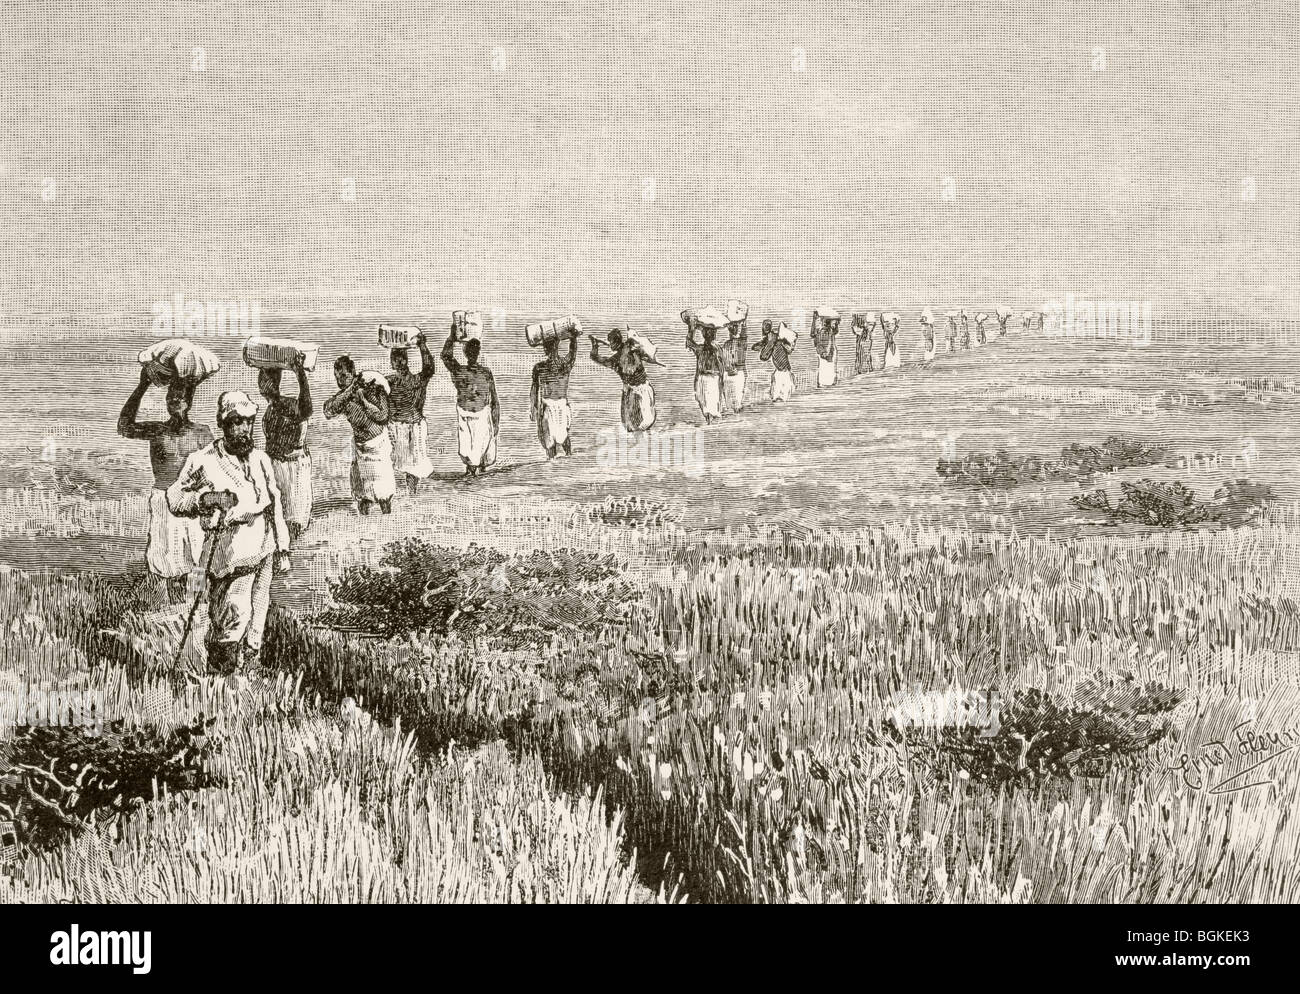 A line of porters carrying expedition supplies during a journey of exploration in East Africa in the mid 19th century. - Stock Image